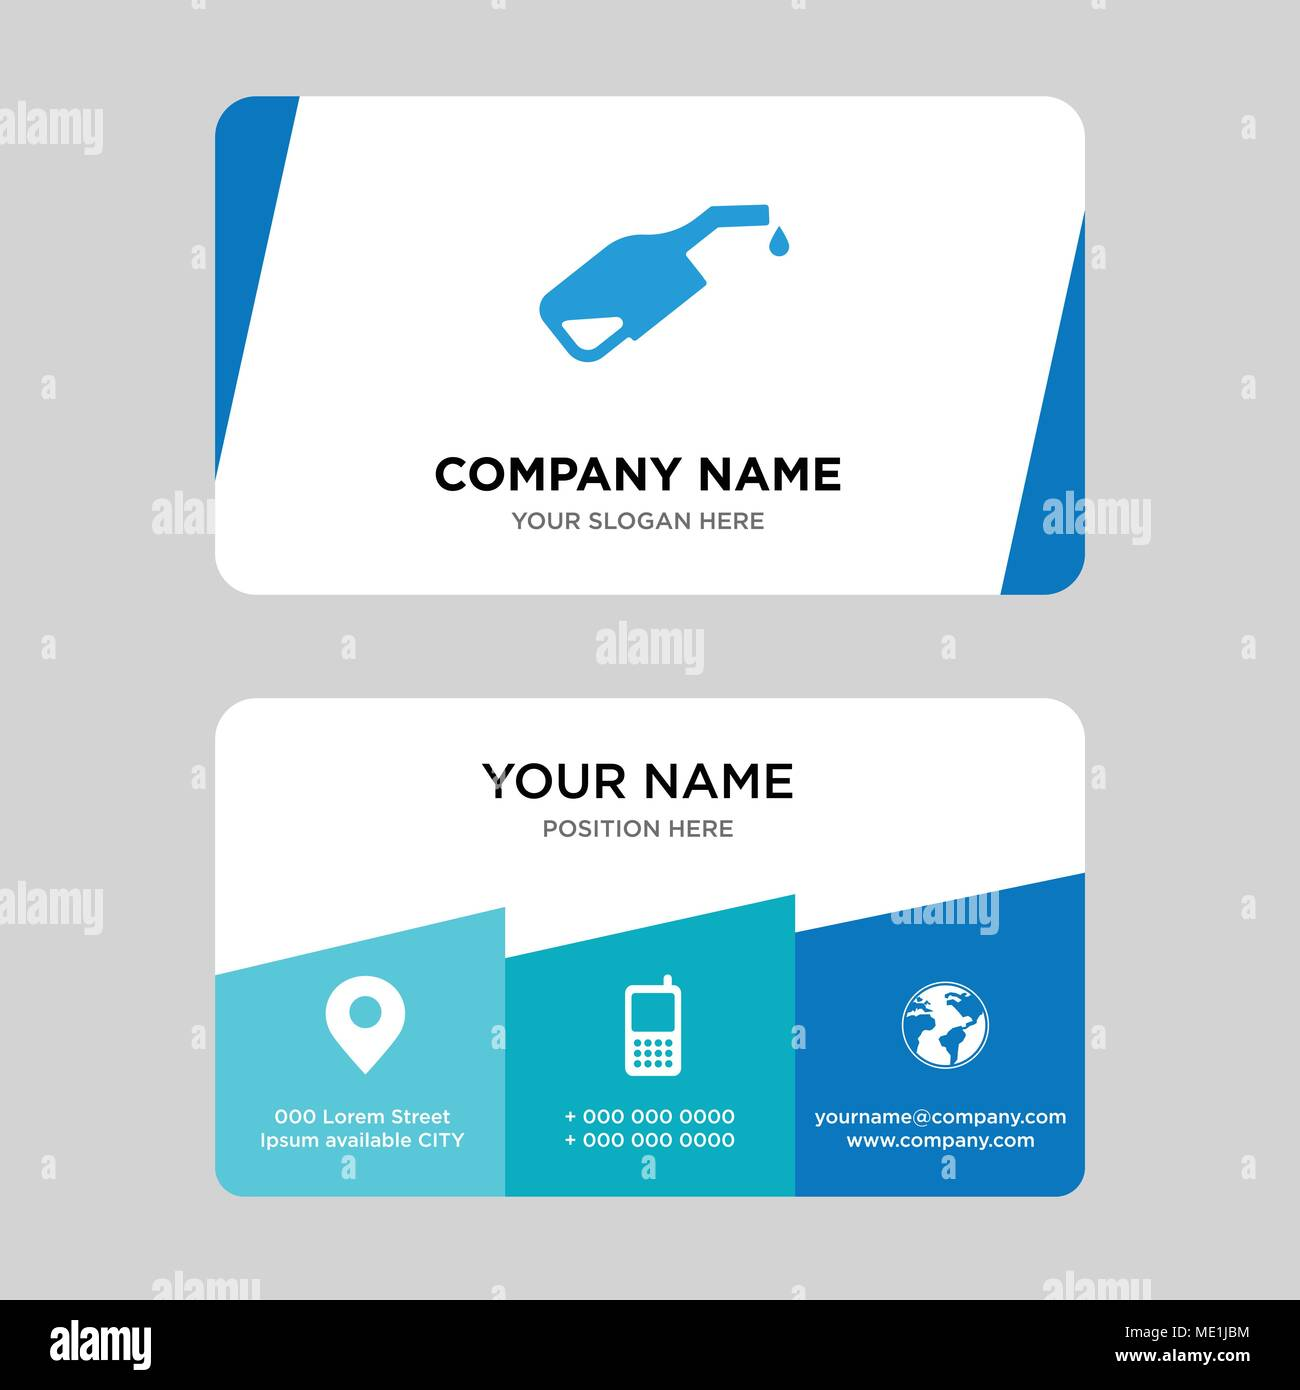 Pump business card design template visiting for your company pump business card design template visiting for your company modern creative and clean identity card vector illustration fbccfo Choice Image